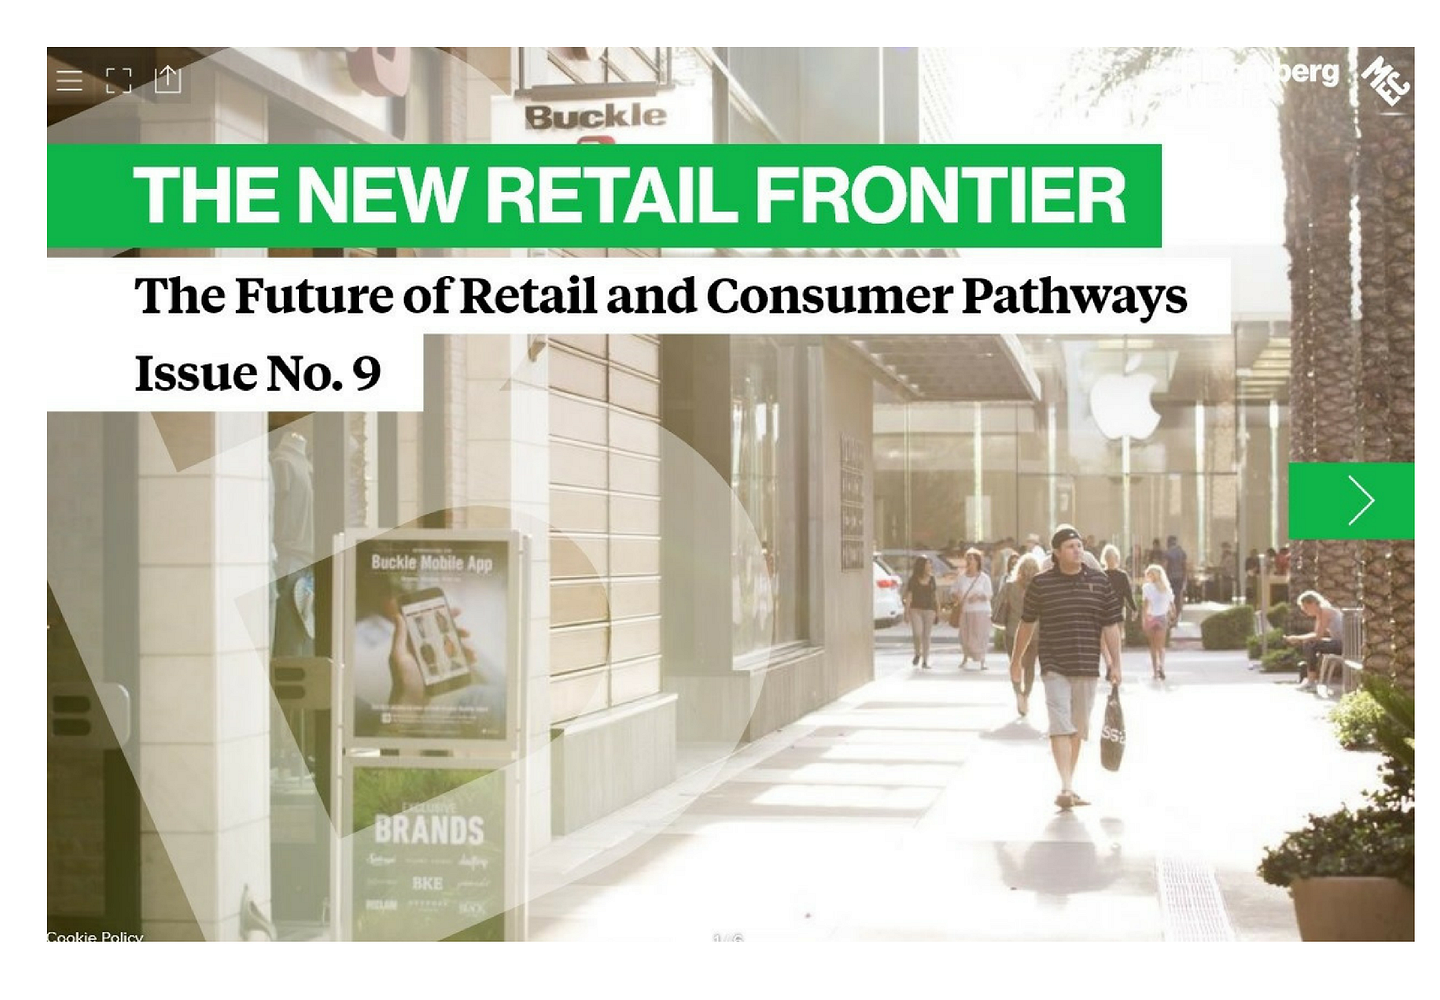 The Future of Retail and Consumer Pathways